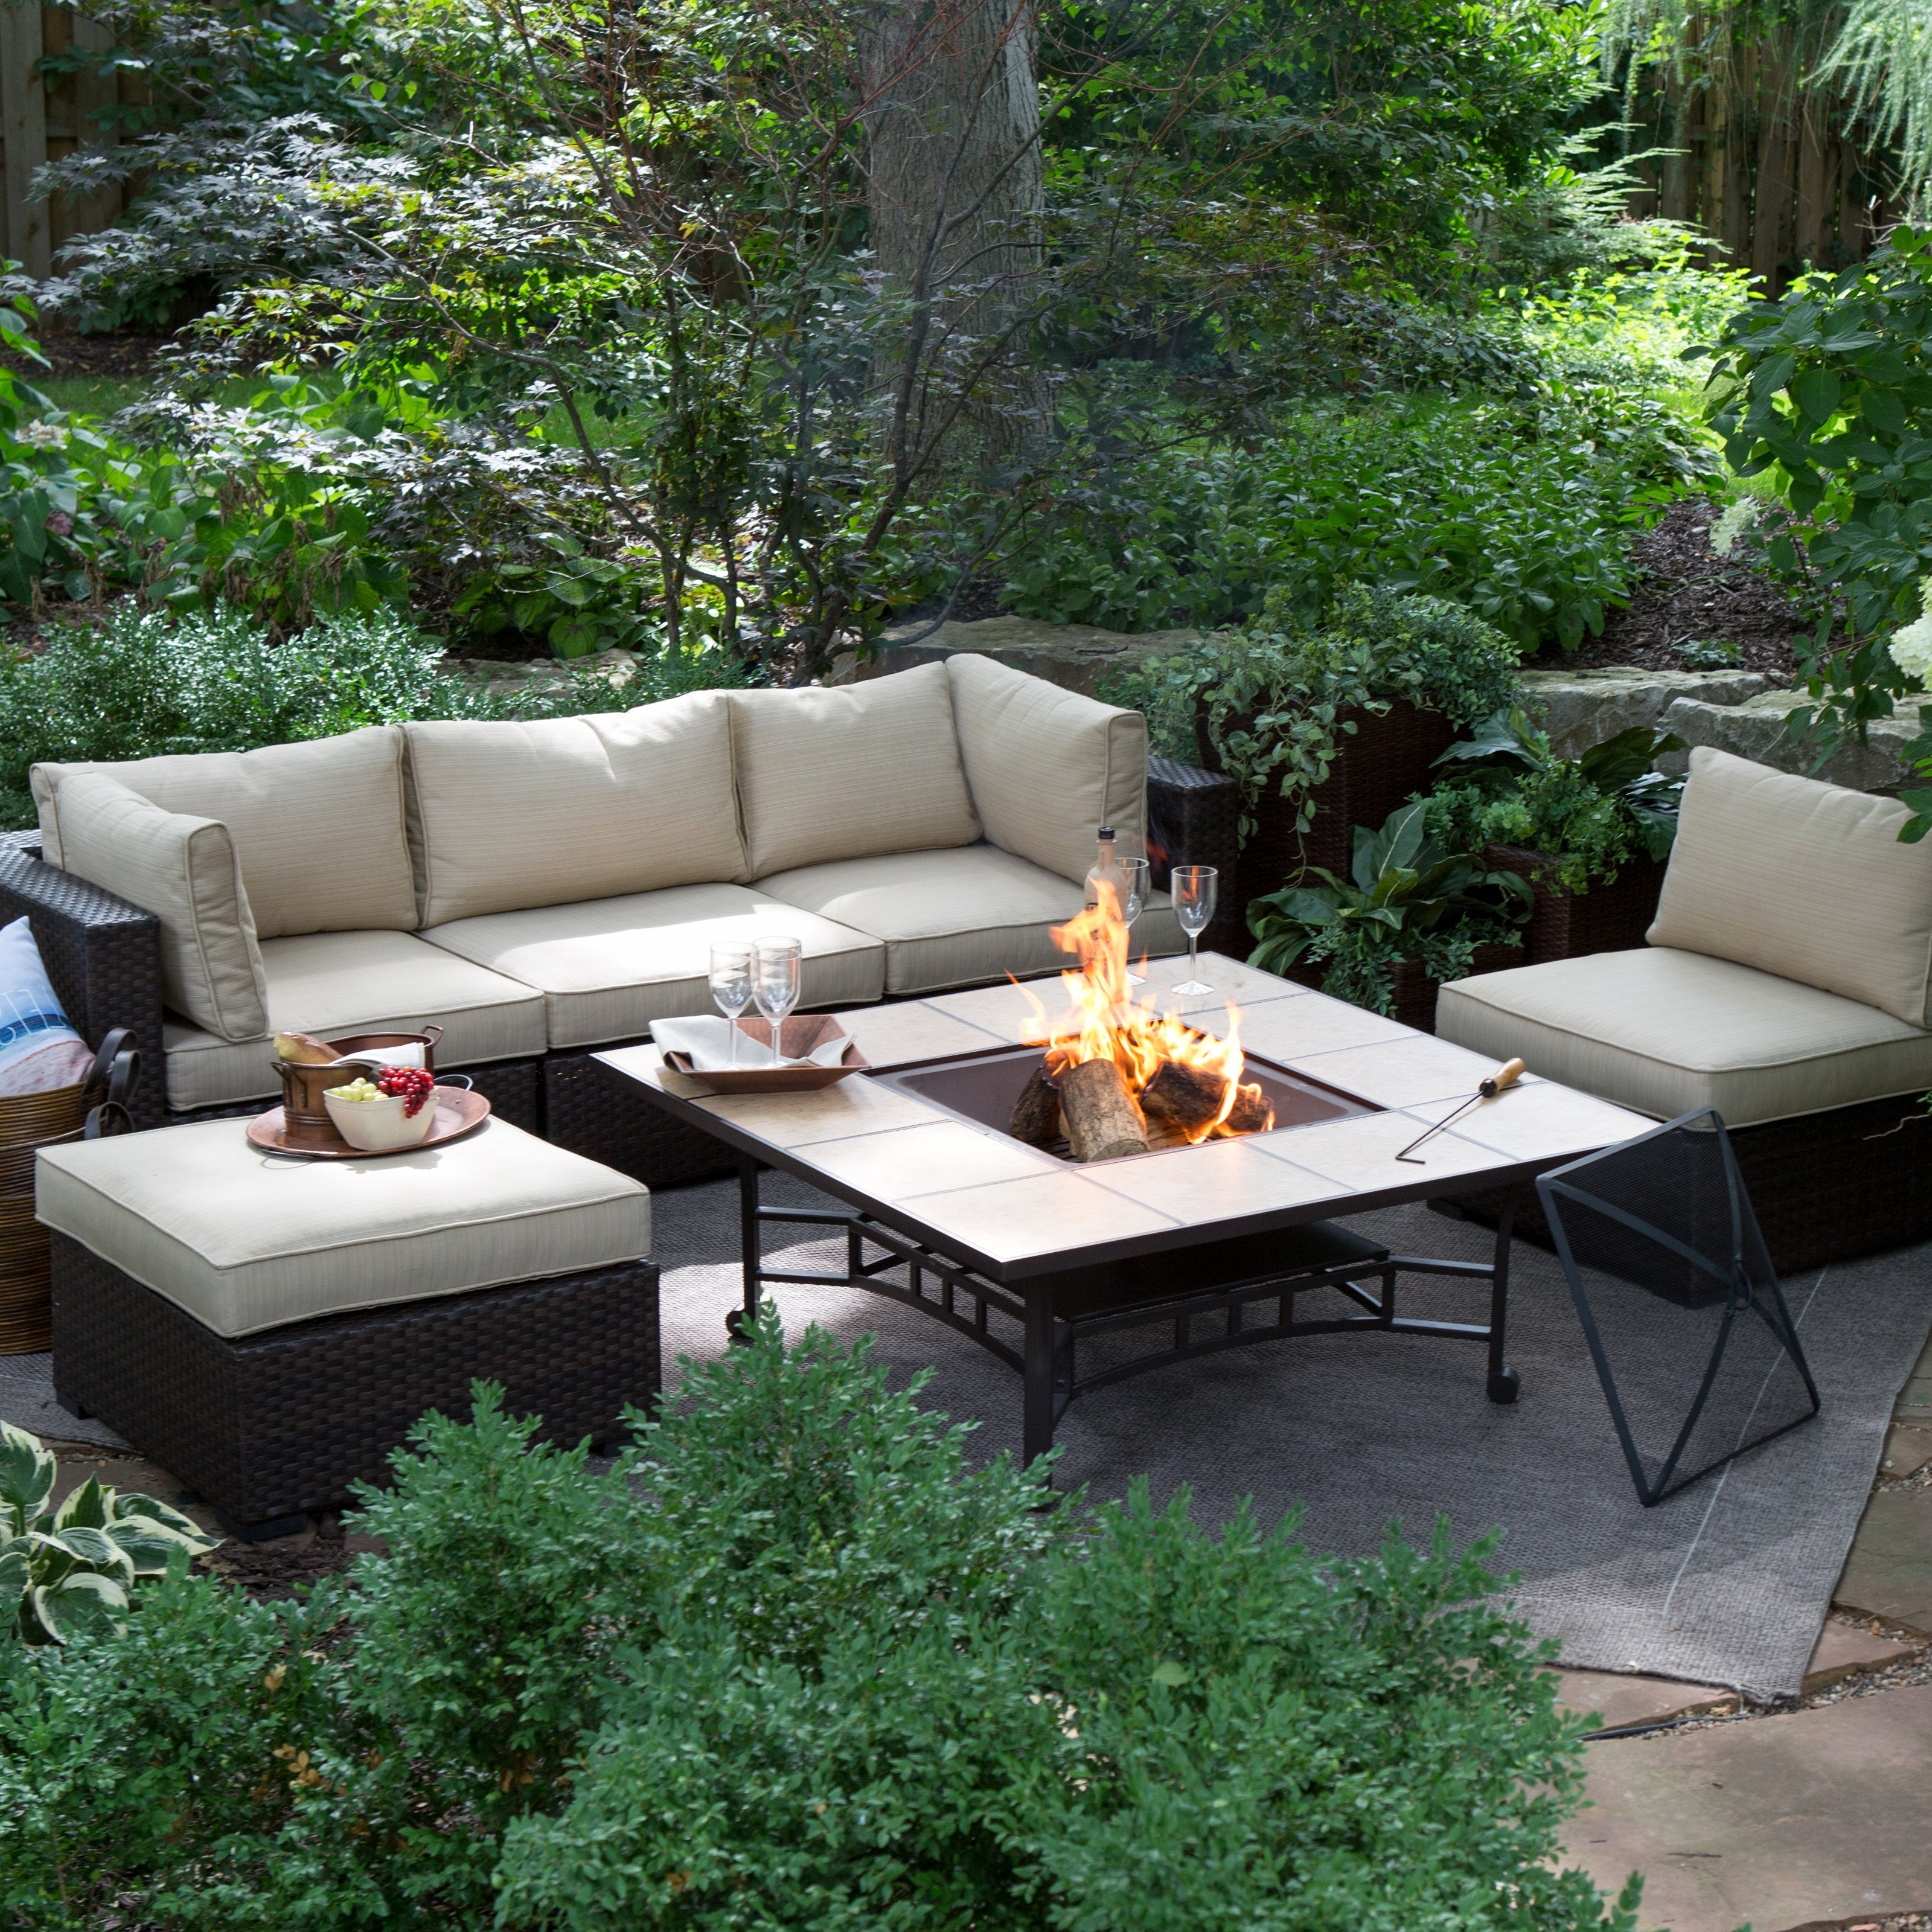 Famous Patio Conversation Sets With Fire Table Within Patio Conversation Sets With Fire Pit Lovely Conversation Sets Fire (View 2 of 15)